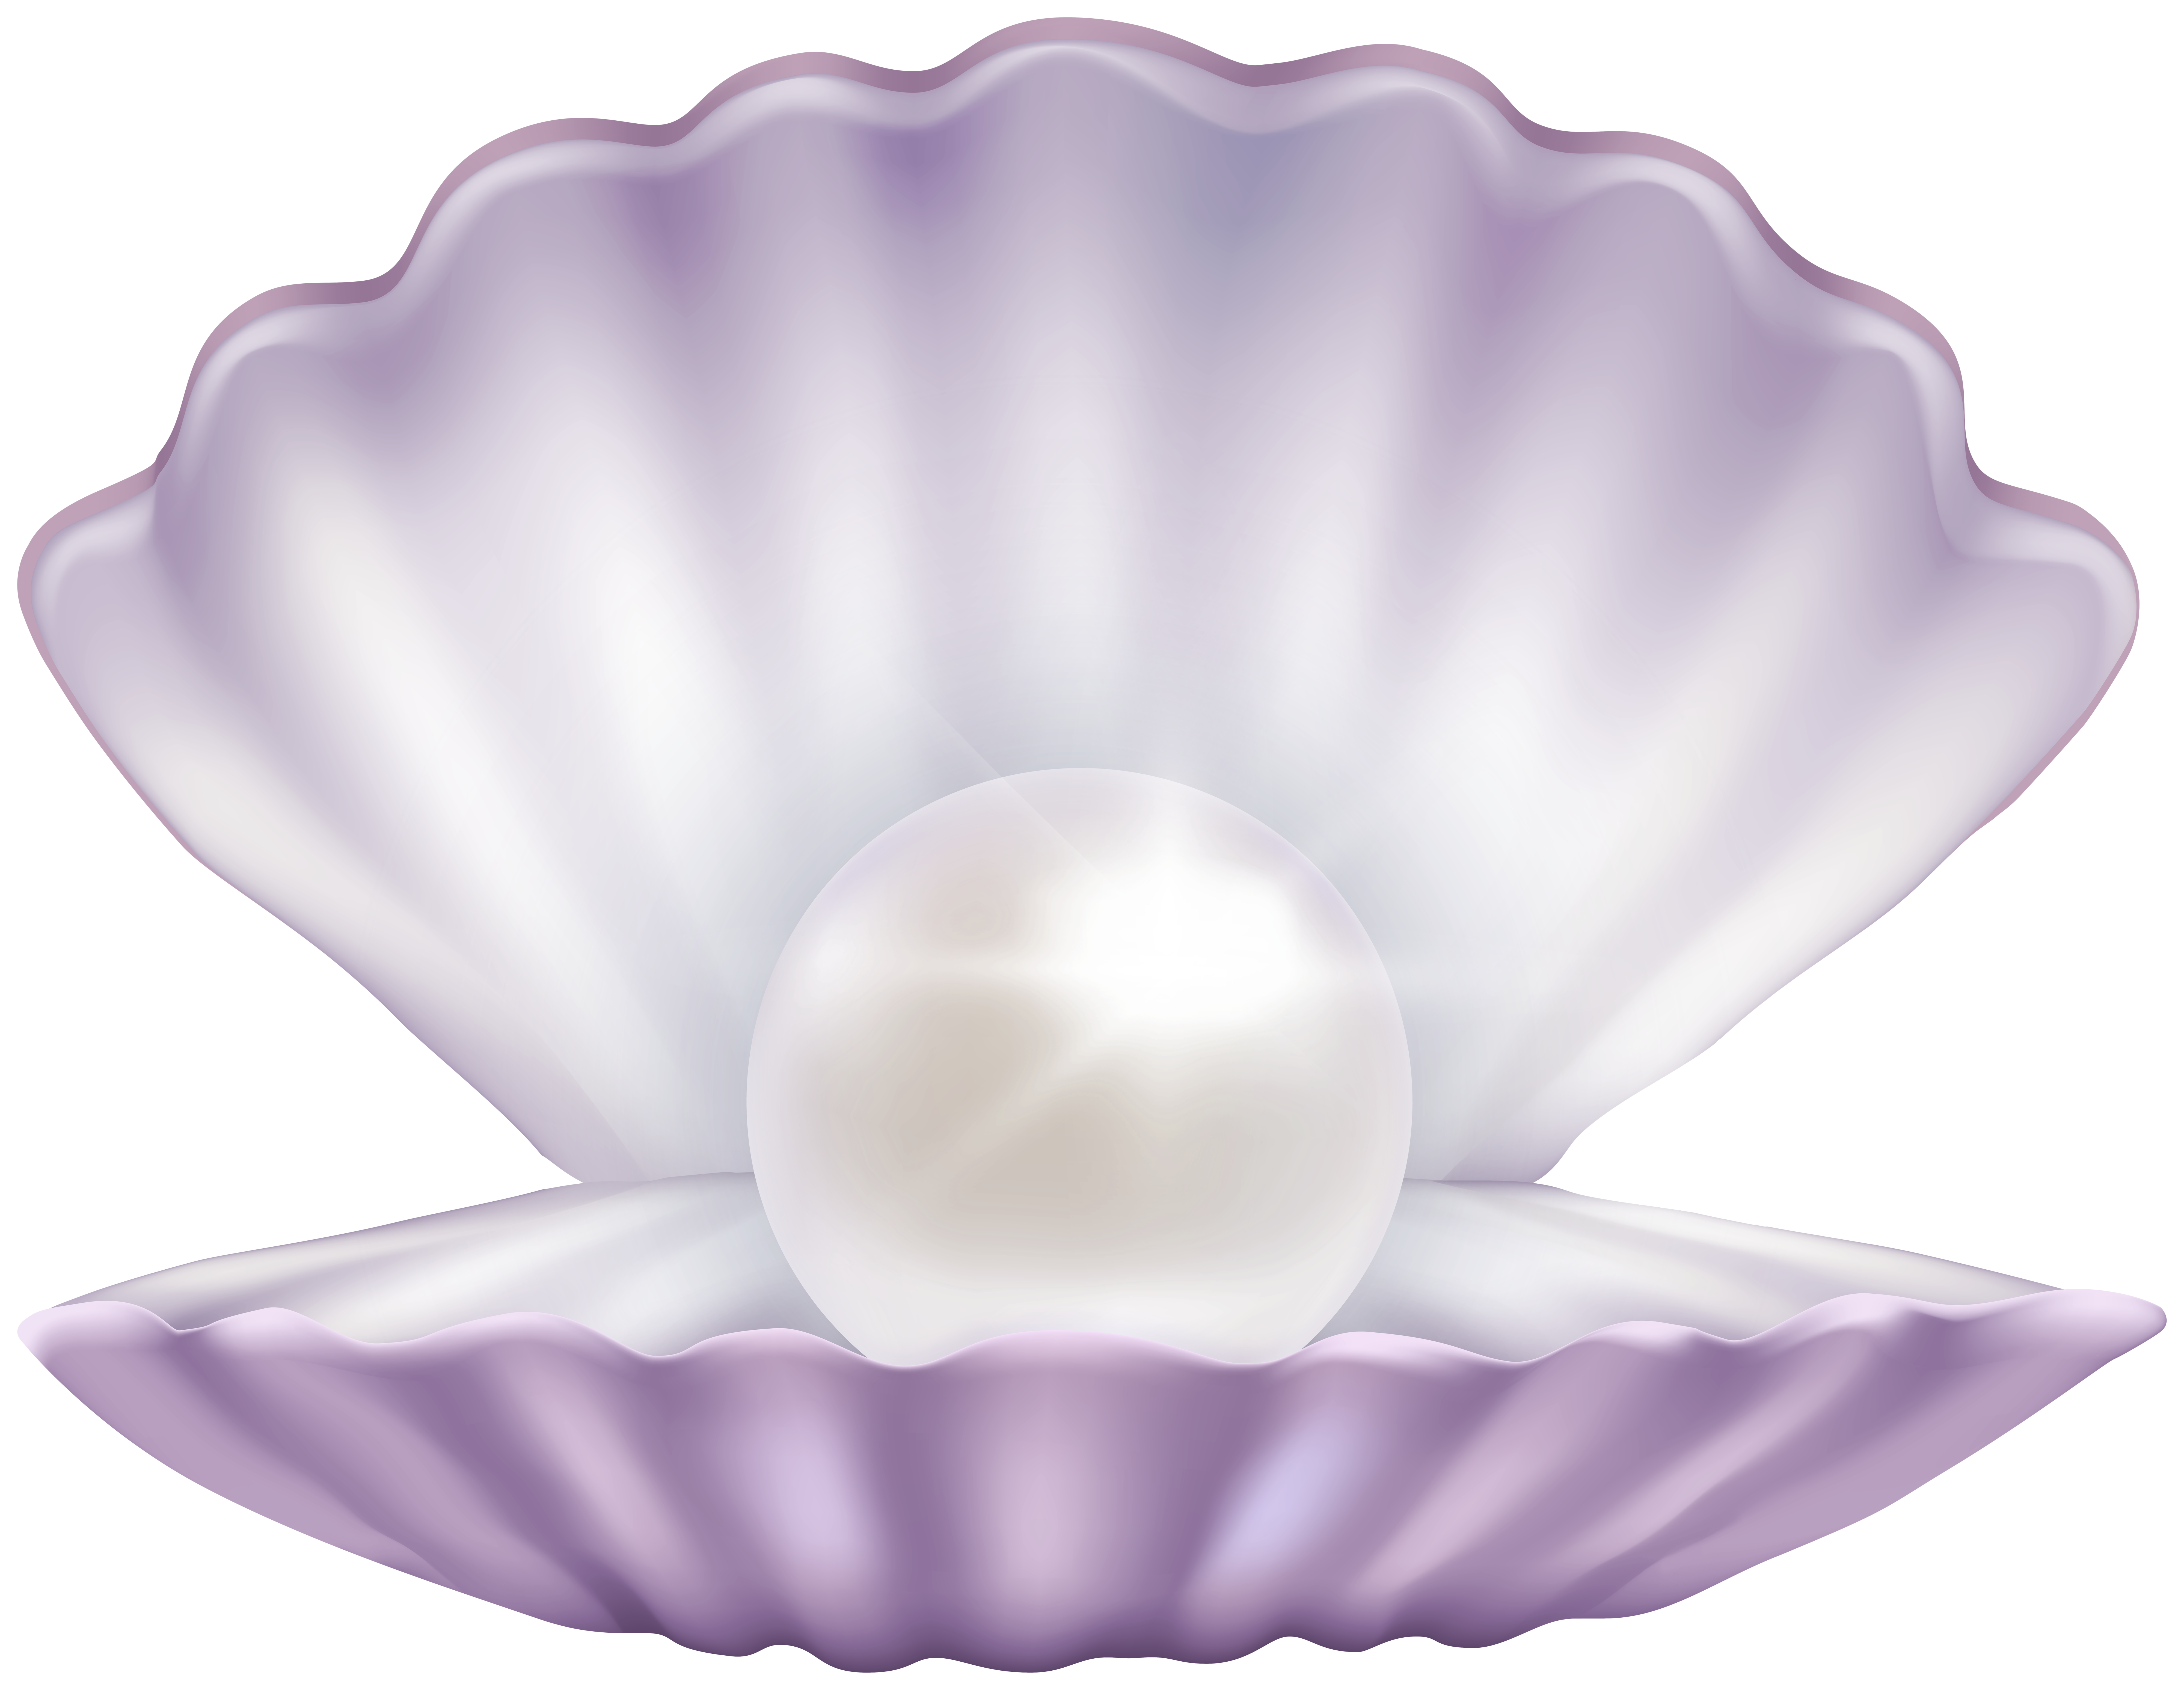 banner transparent download Clam with pearl clipart. Png gallery yopriceville high.